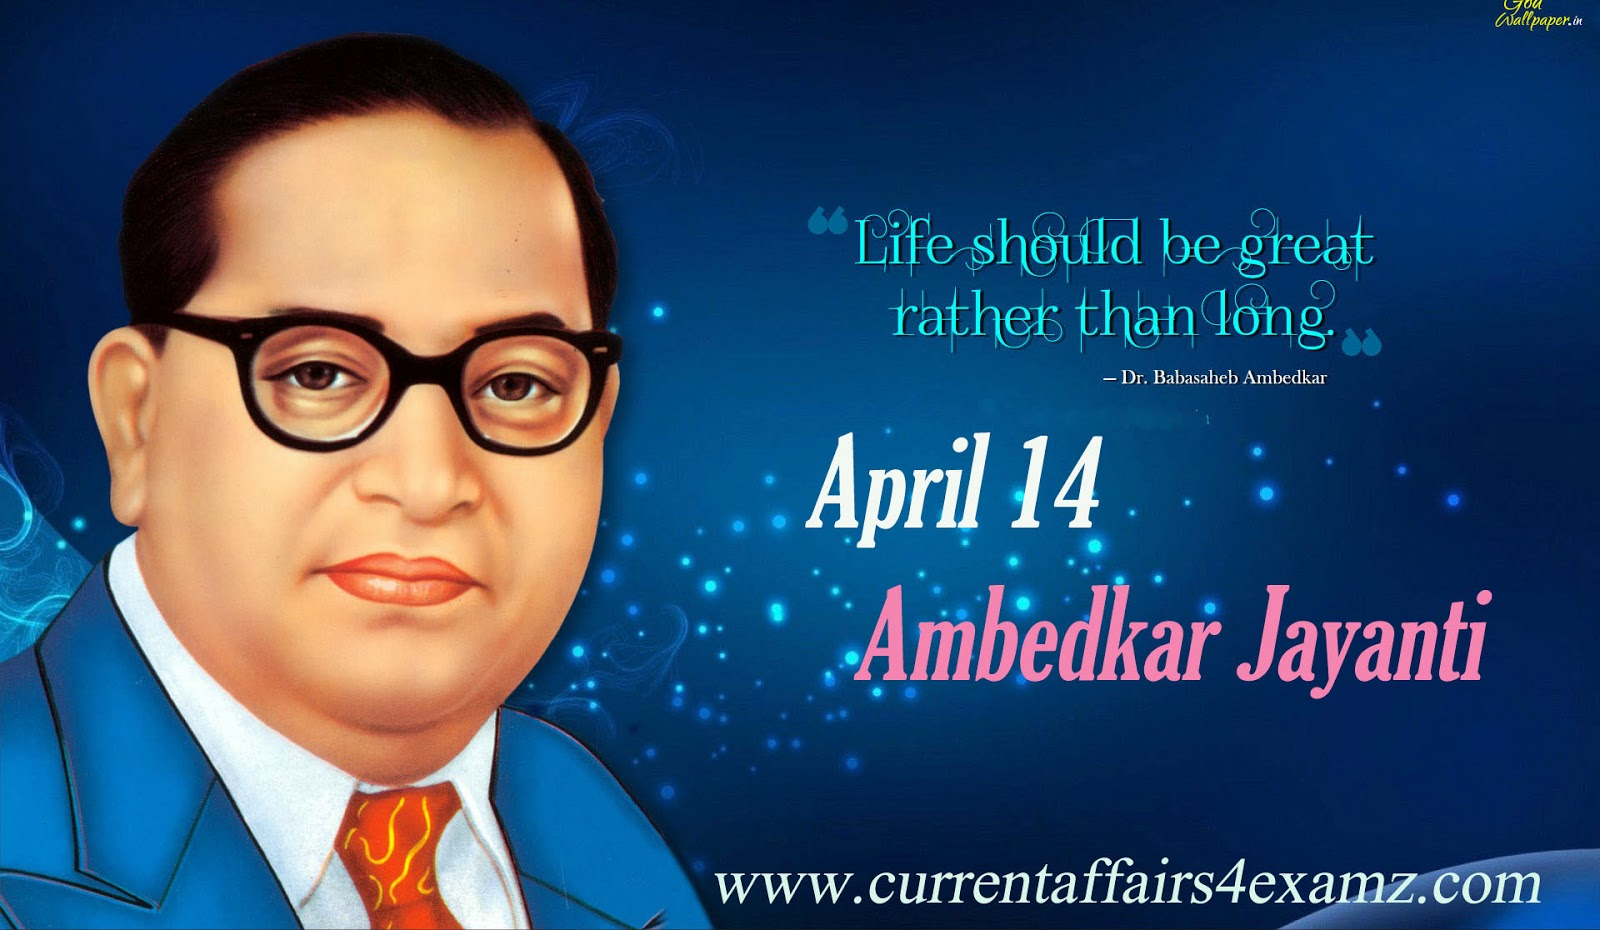 ... 14 every year to commemorate the memory of dr babasaheb ambedkar this